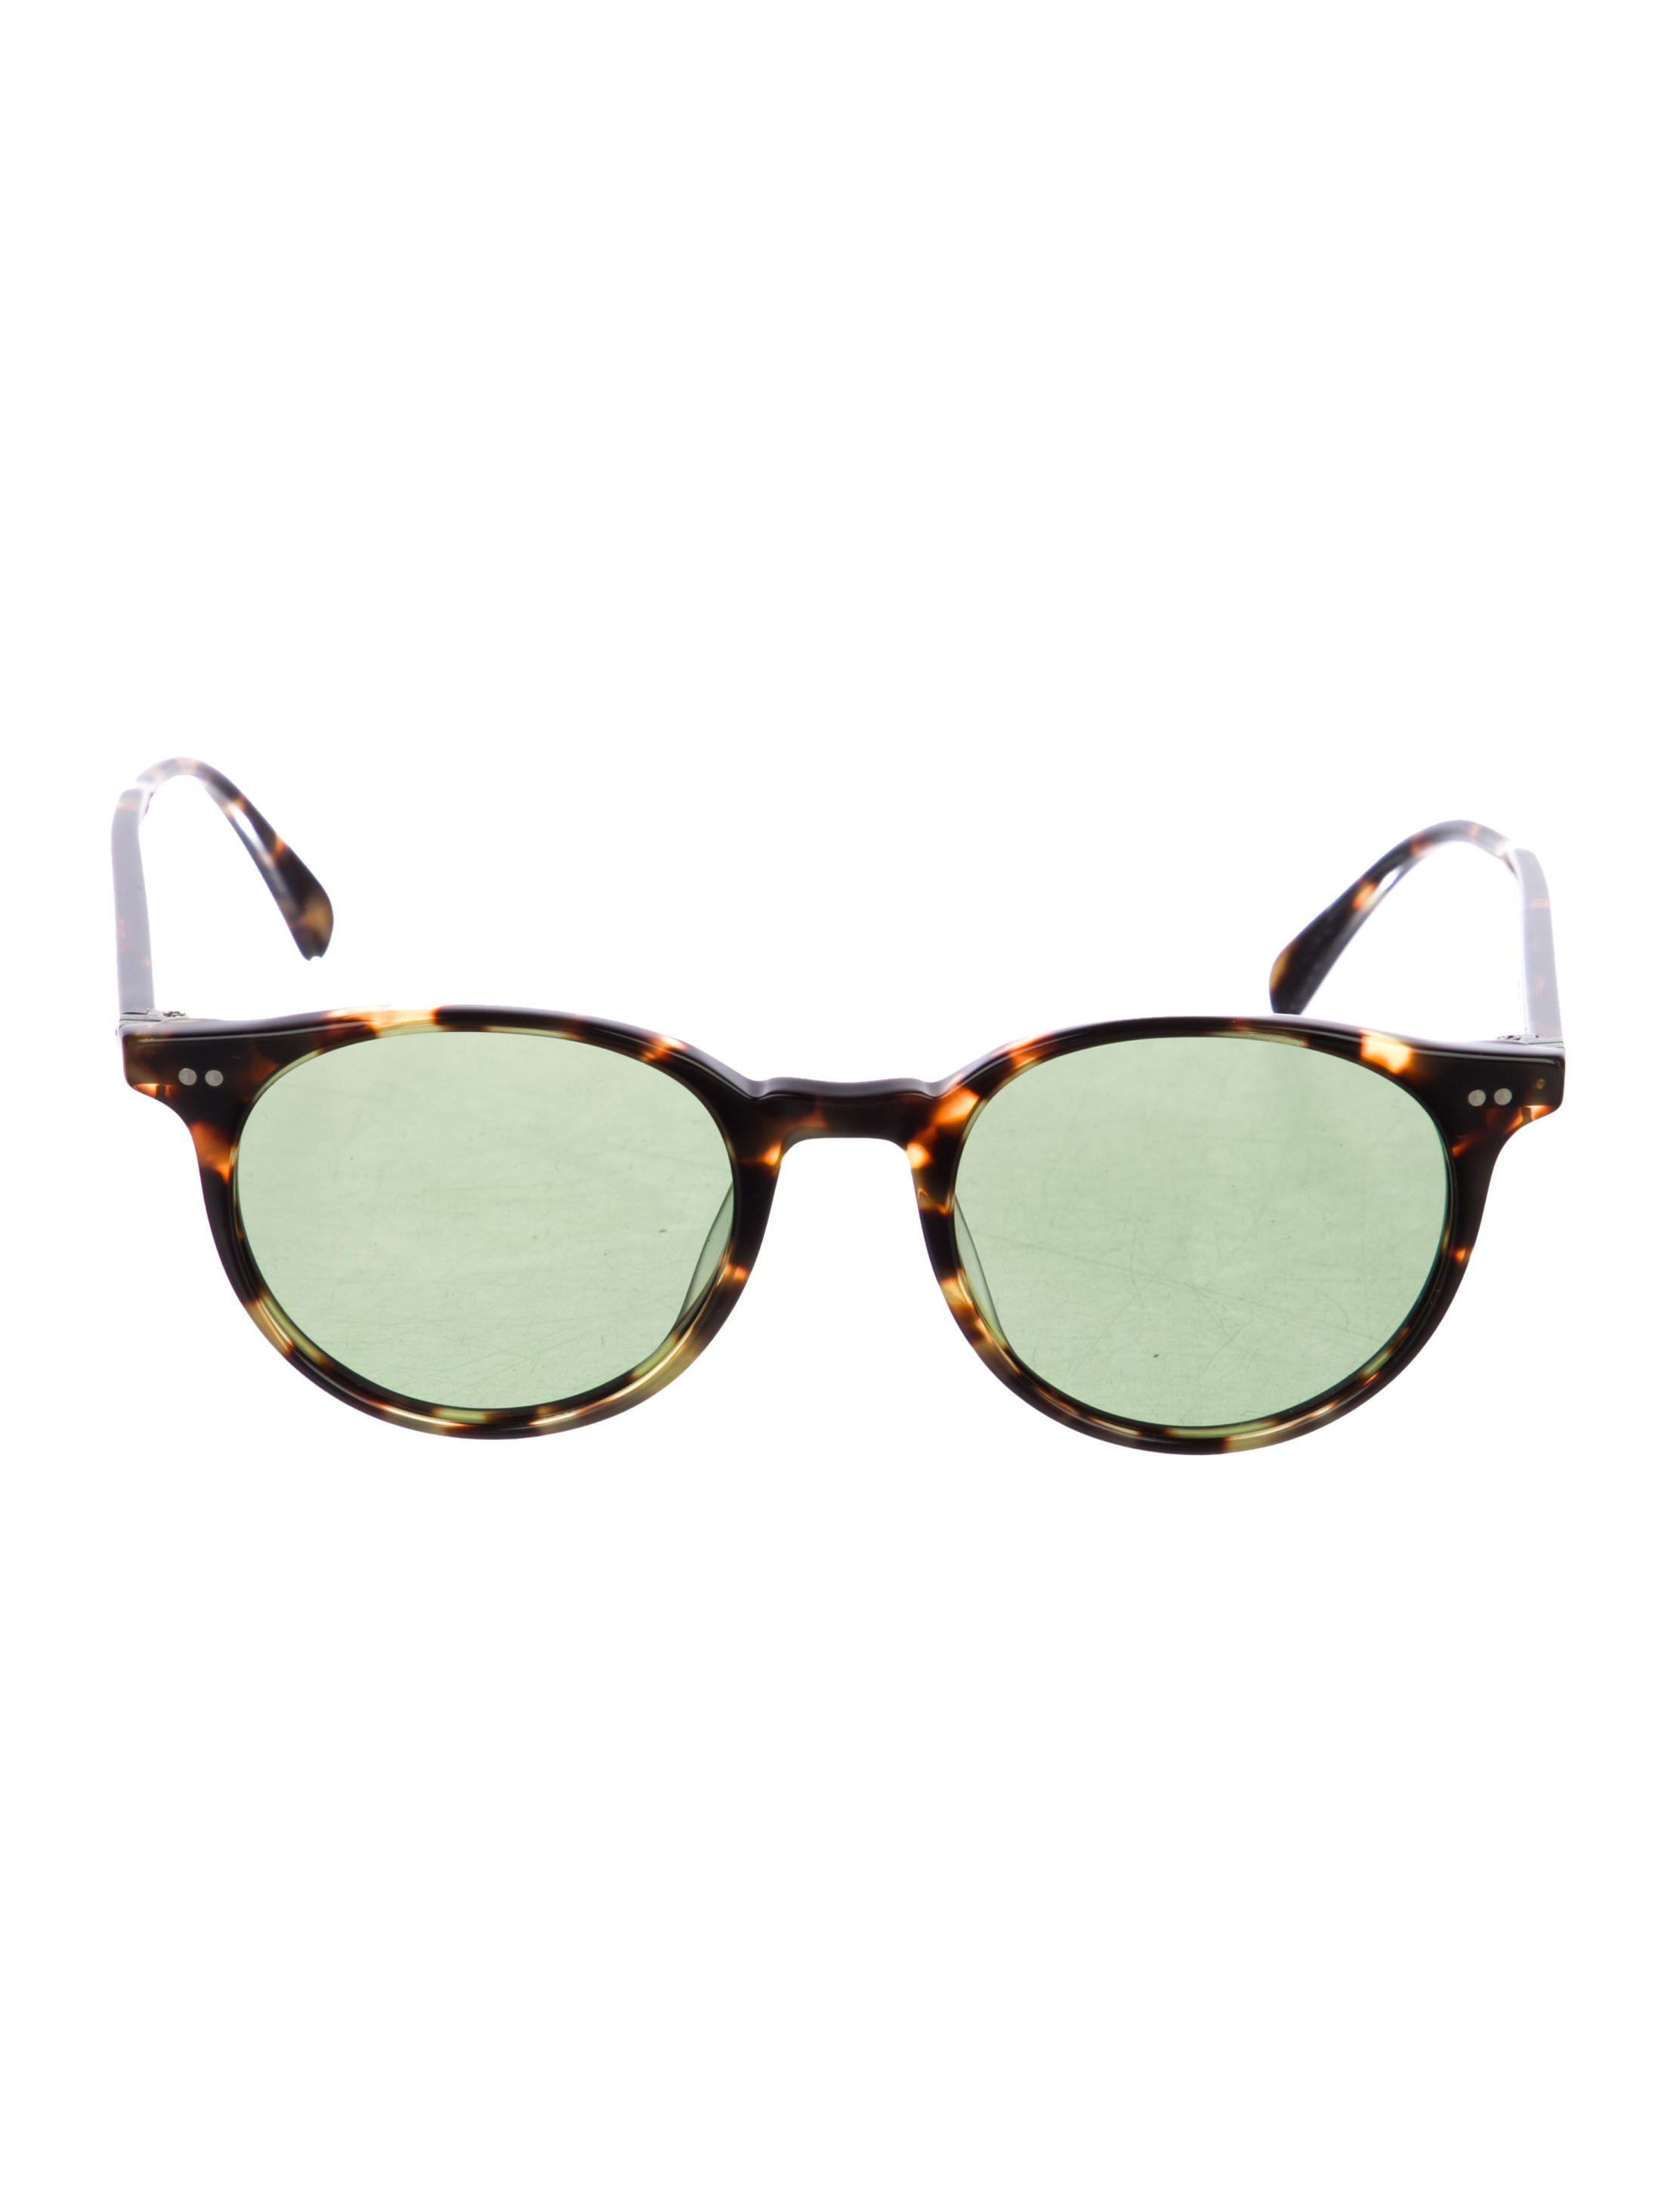 950c6c43ba846 Oliver Peoples Delray Sun Tortoiseshell Sunglasses - Accessories ...